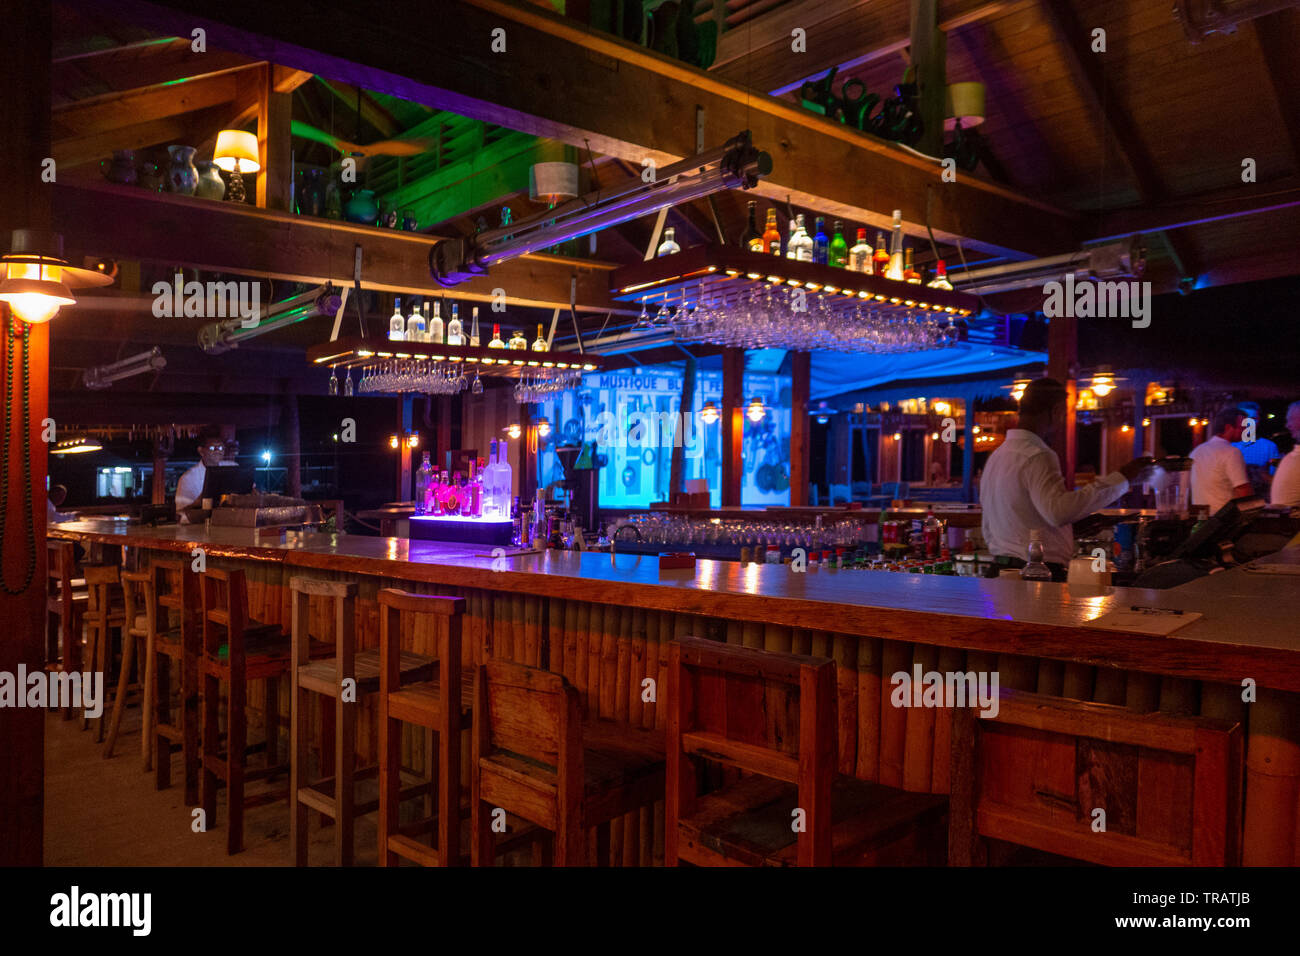 Dancefloor And Bar At Basils Mustique Stock Photos Dancefloor